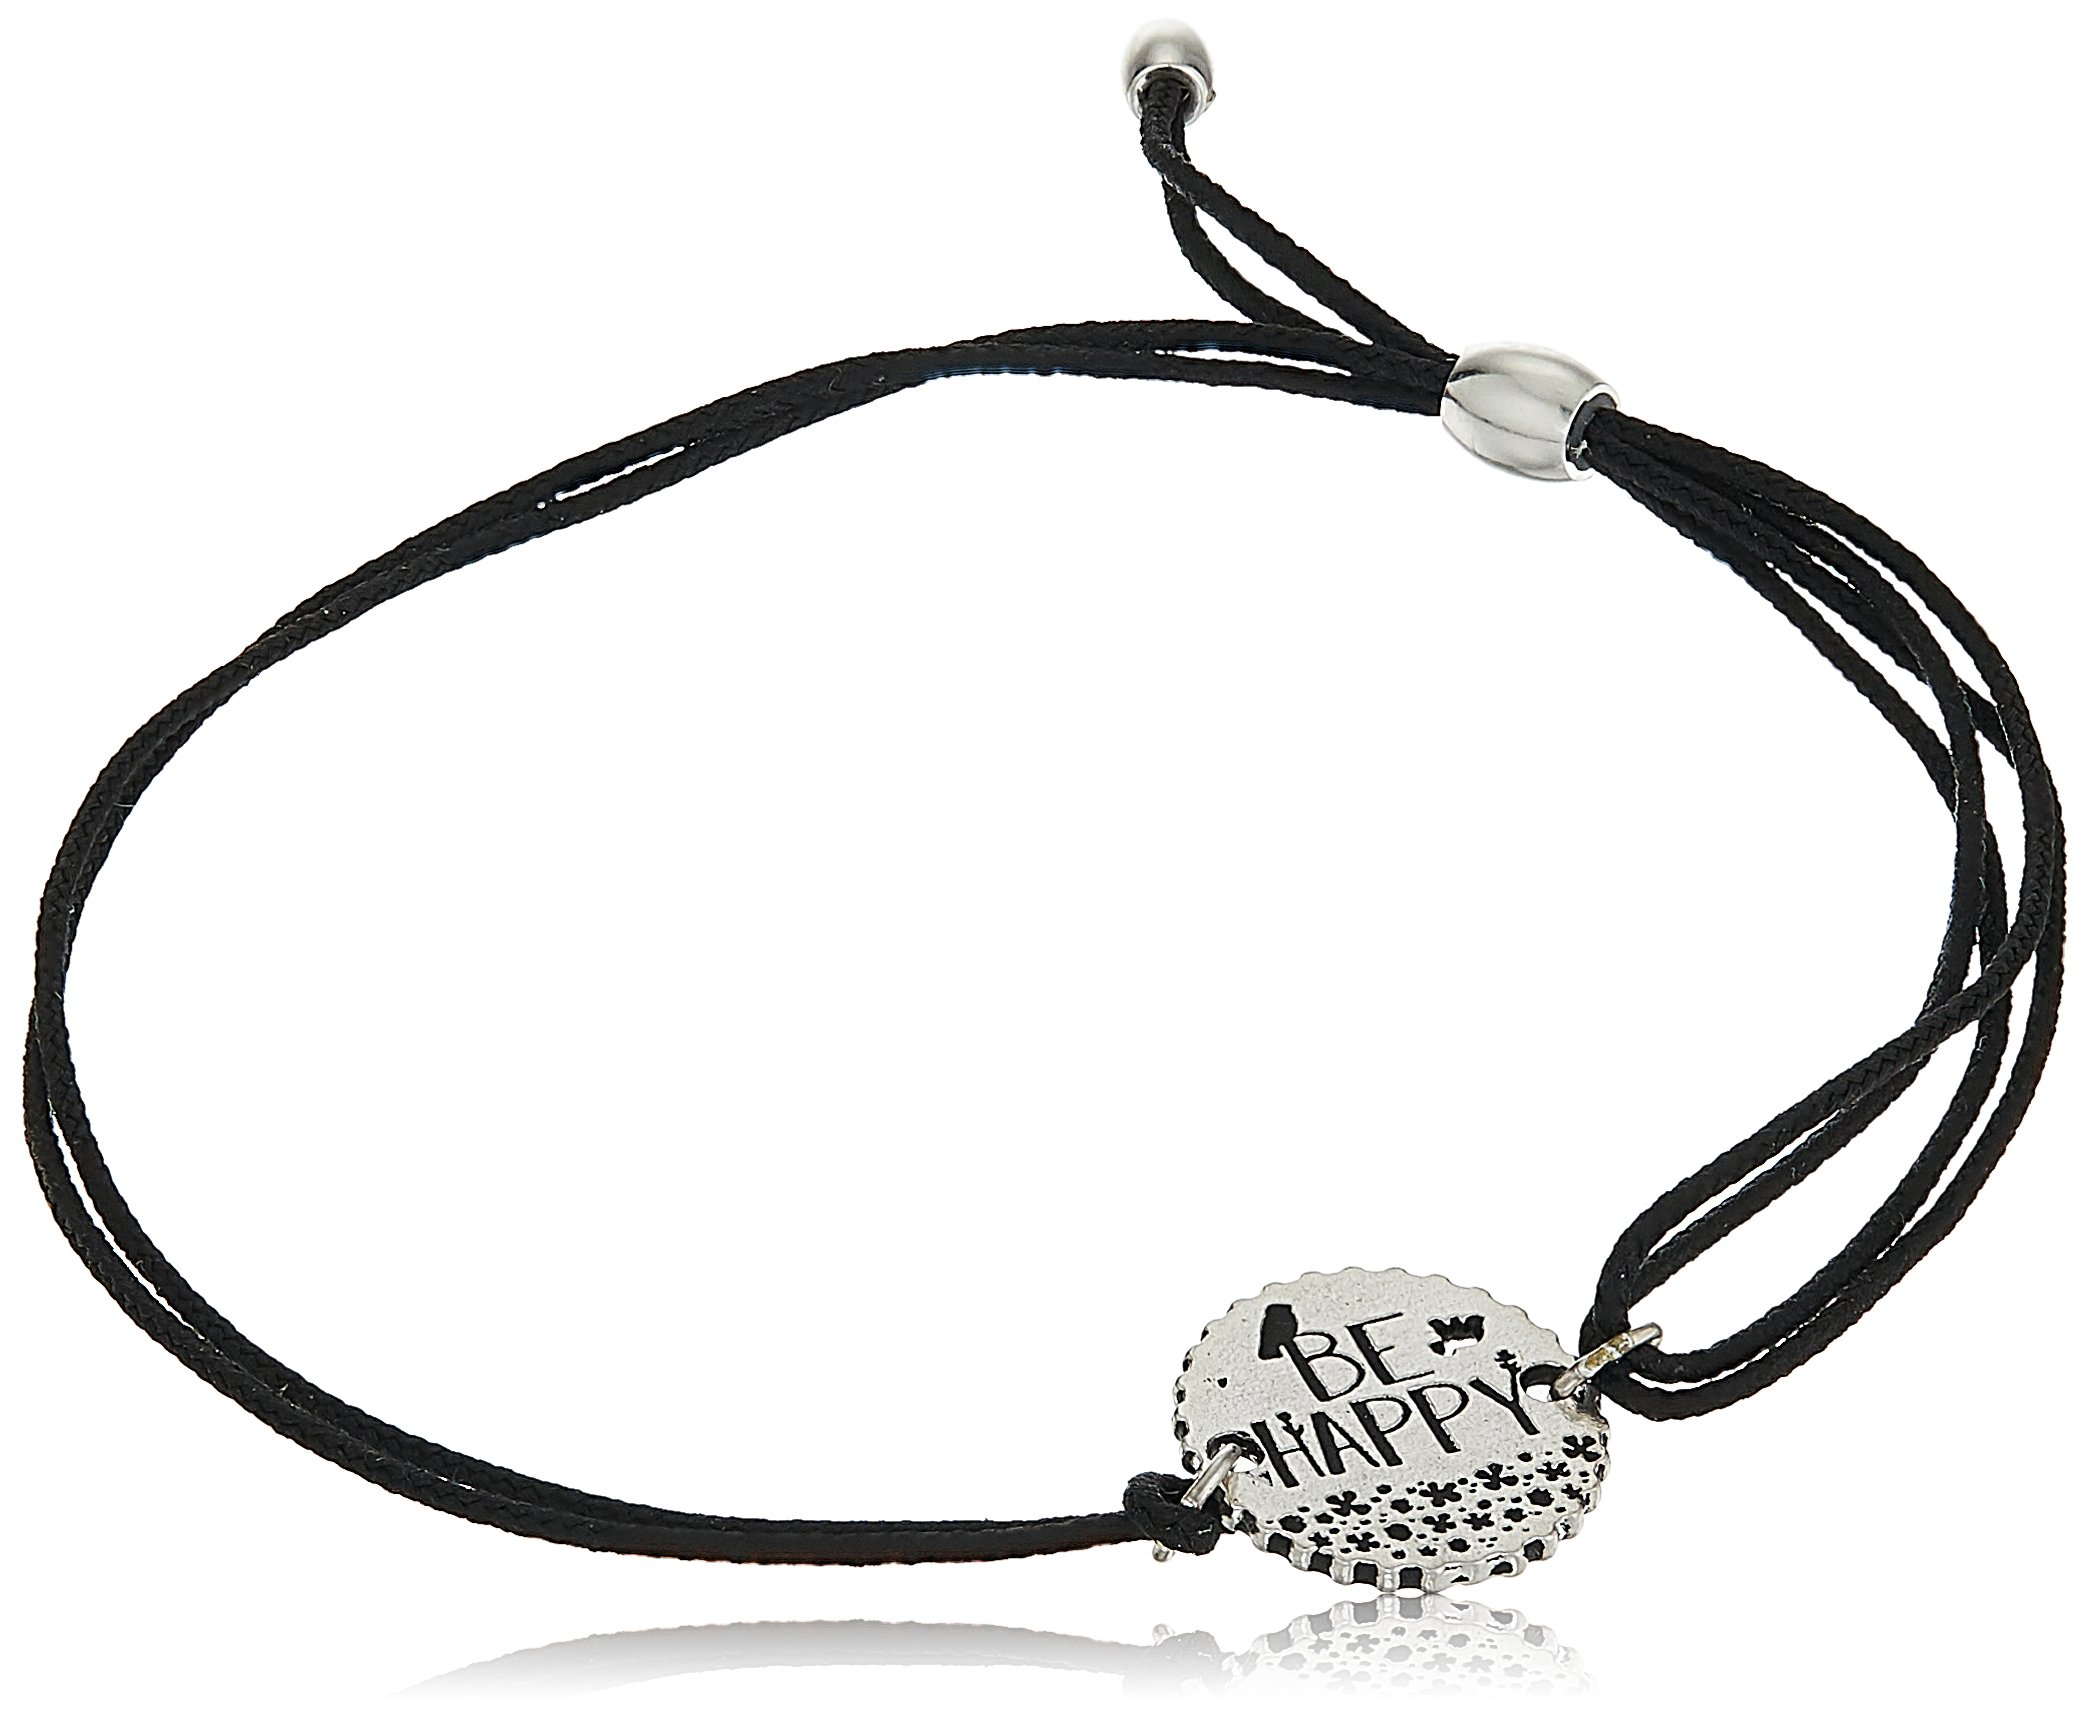 Alex and Ani Kindred Cord, Be Happy, Sterling Silver Bangle Bracelet